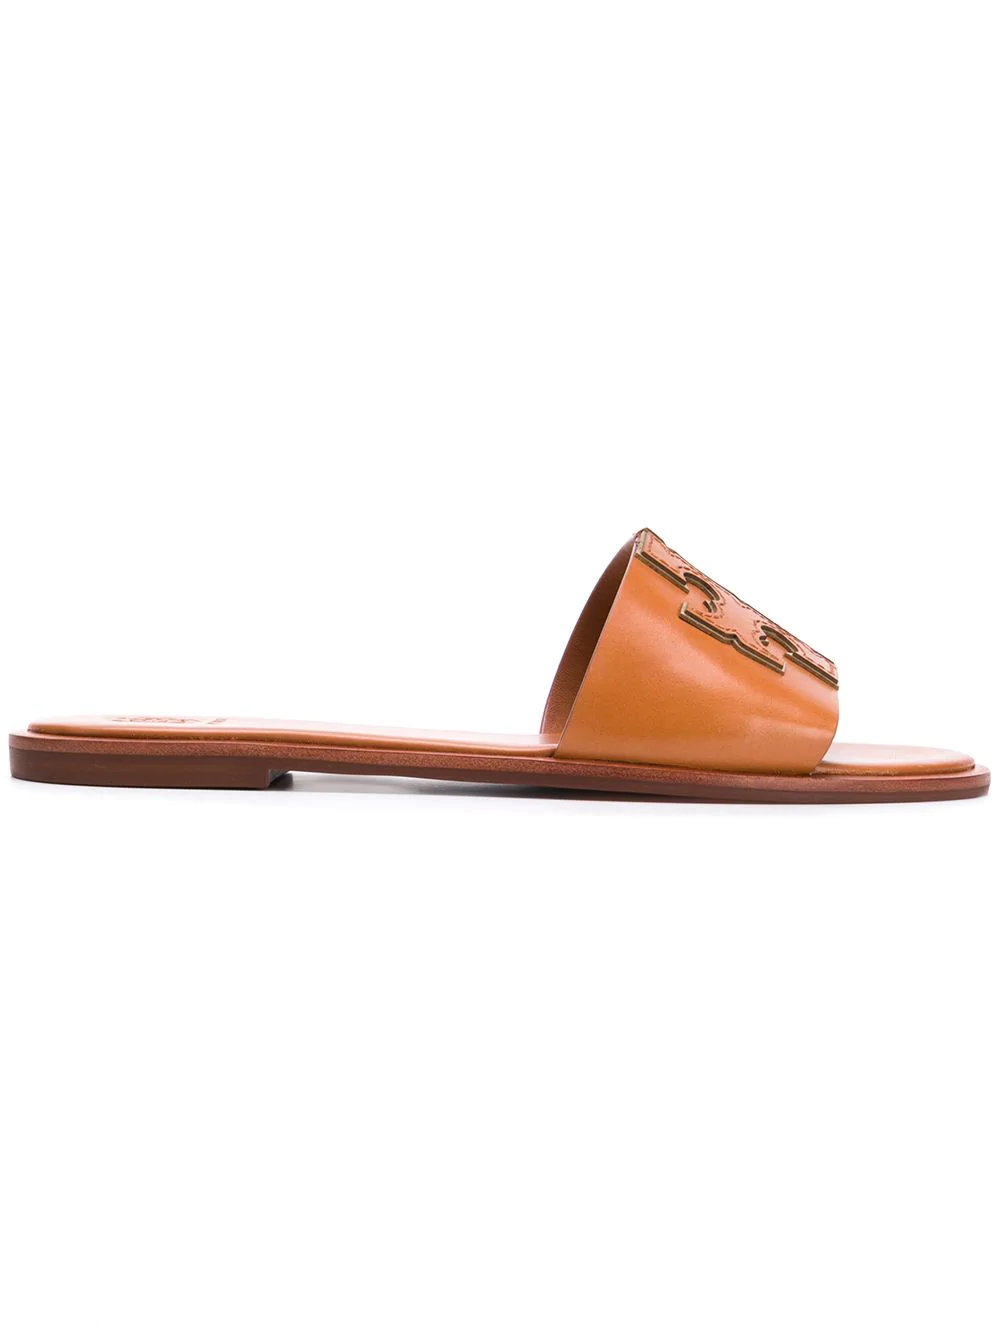 24e035f63 Tory Burch Ines Leather Sandals In Leather Color In Cuoio (Camel ...